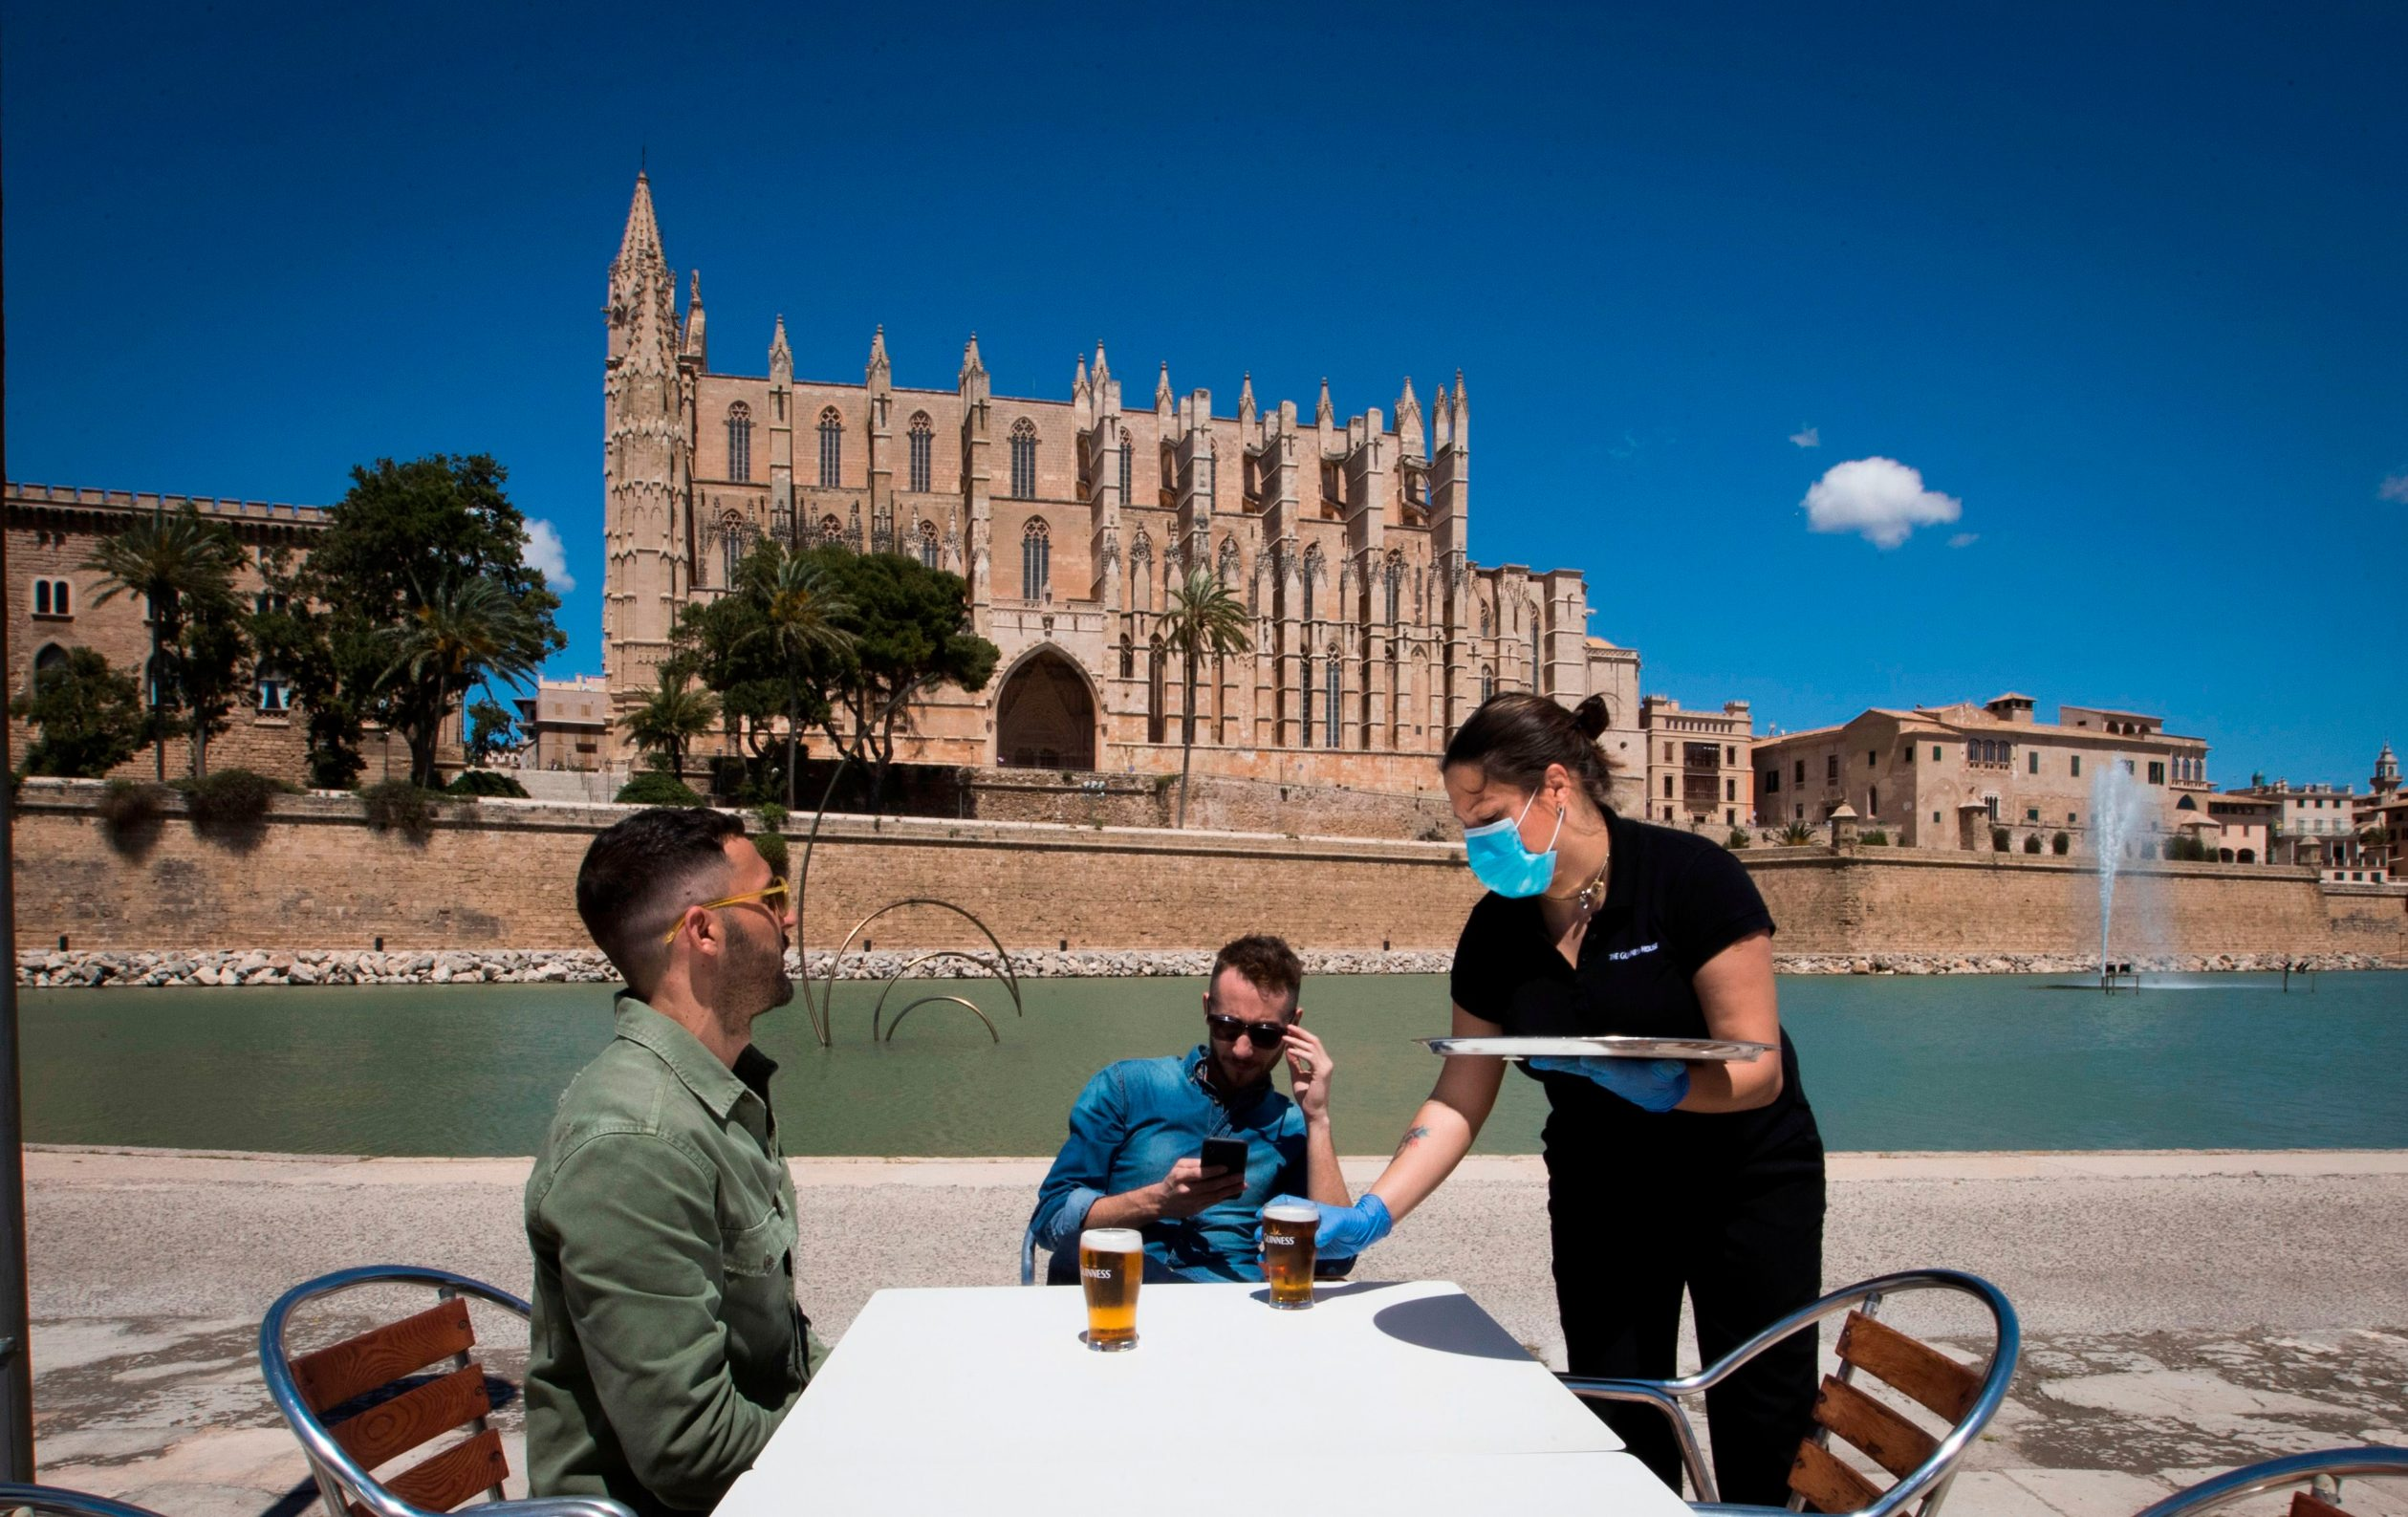 A waitress wearing a face mask and gloves serves customers at a terrace bar near the Cathedral in Palma de Mallorca on May 11, 2020, as Spain moved towards easing its strict lockdown in certain regions. - Spaniards returned to outdoor terraces at cafes and bars as around half of the country moved to the next phase of a gradual exit from one of Europe's strictest lockdowns (Photo by JAIME REINA / AFP)